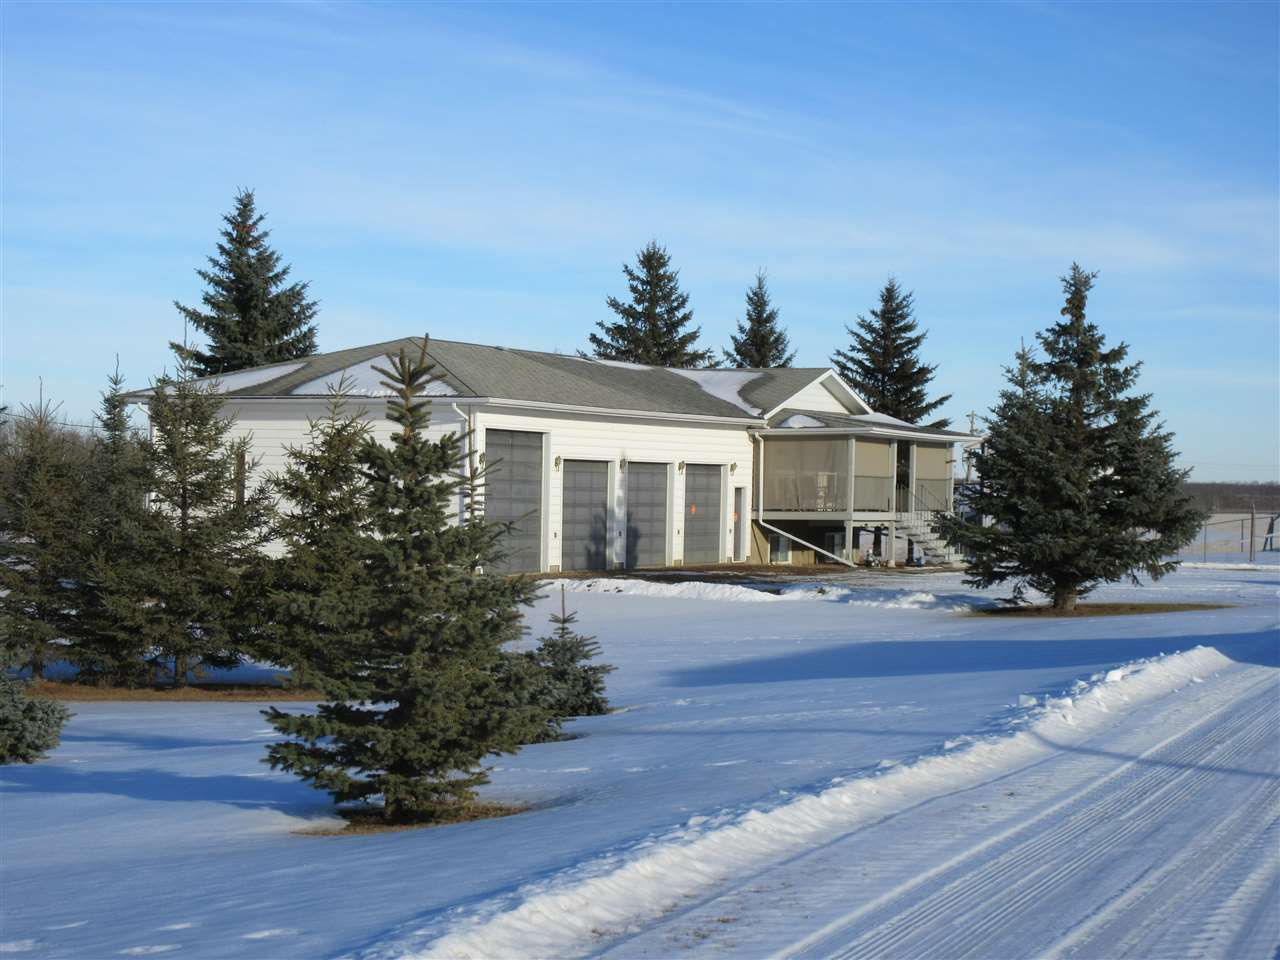 Main Photo: 57517 RR 220: Rural Sturgeon County House for sale : MLS®# E4136175